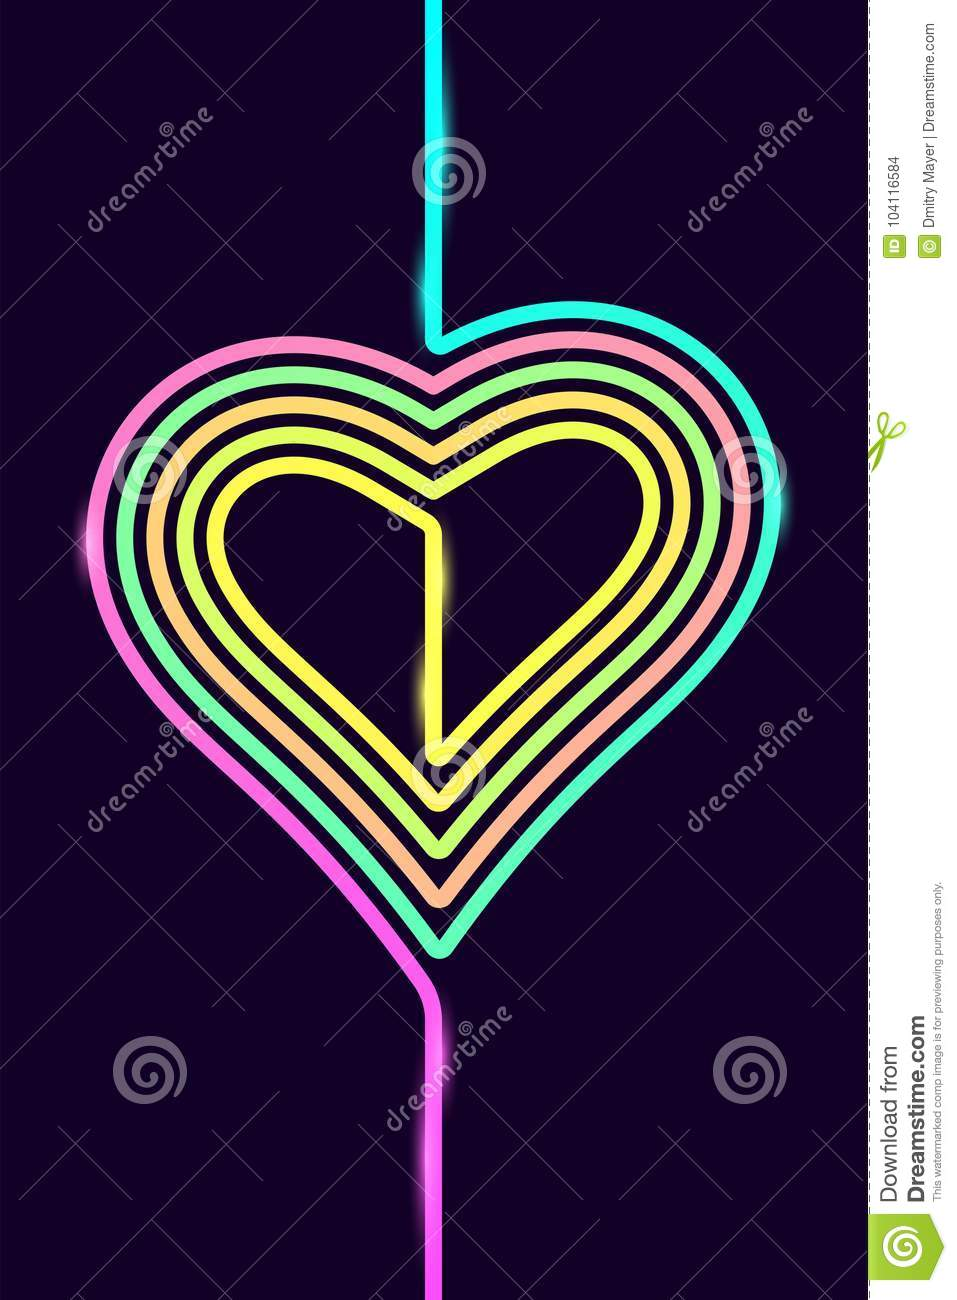 Vector Phone Background with Colorful Heart